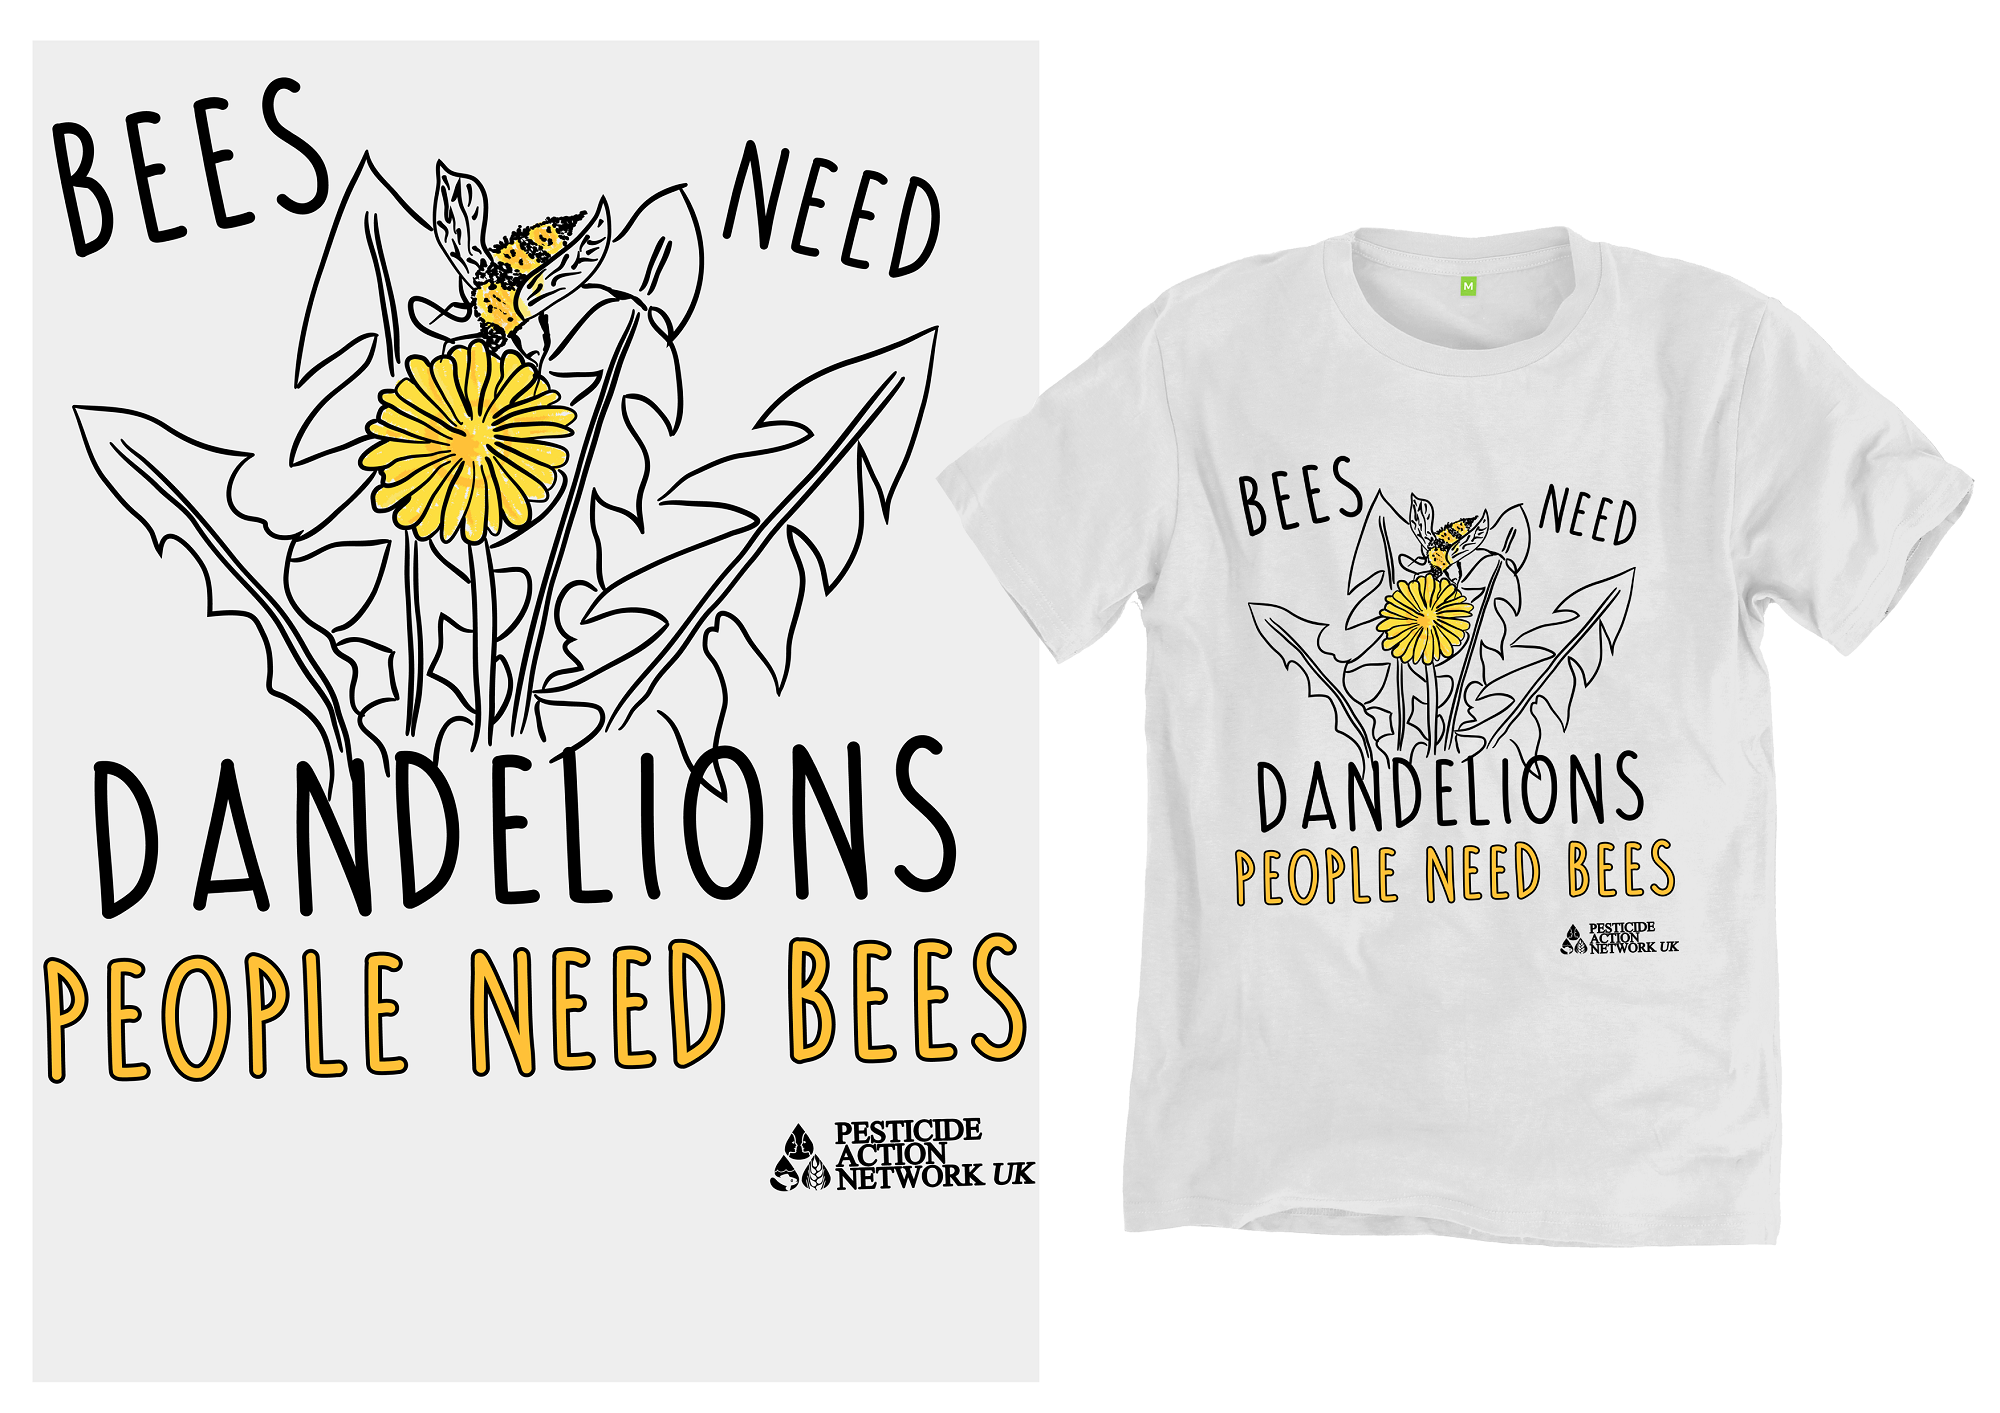 Bees need dandelions t-shirts